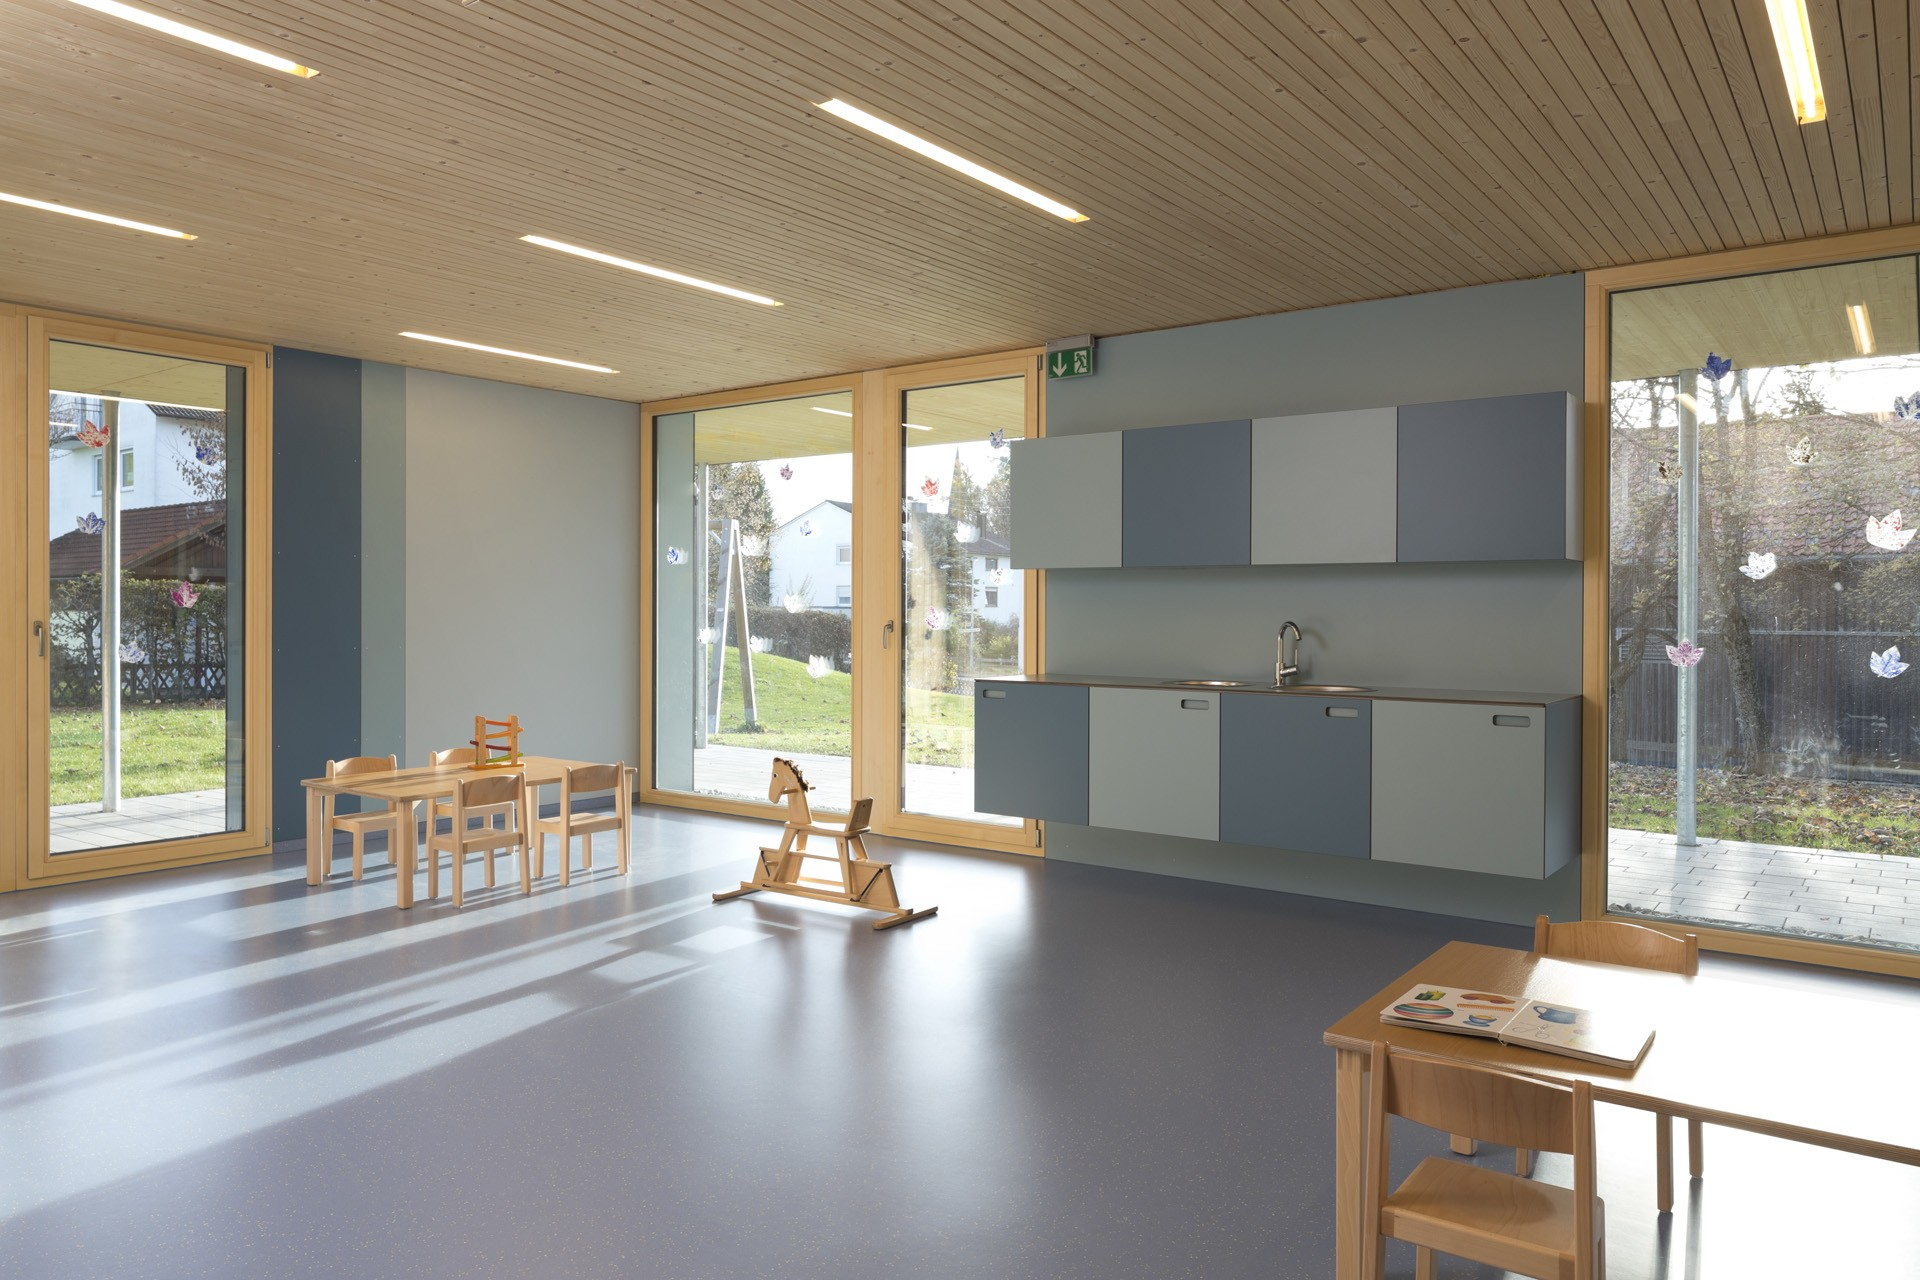 architektur-plus-raum-kinderkrippe-st-mahng-04